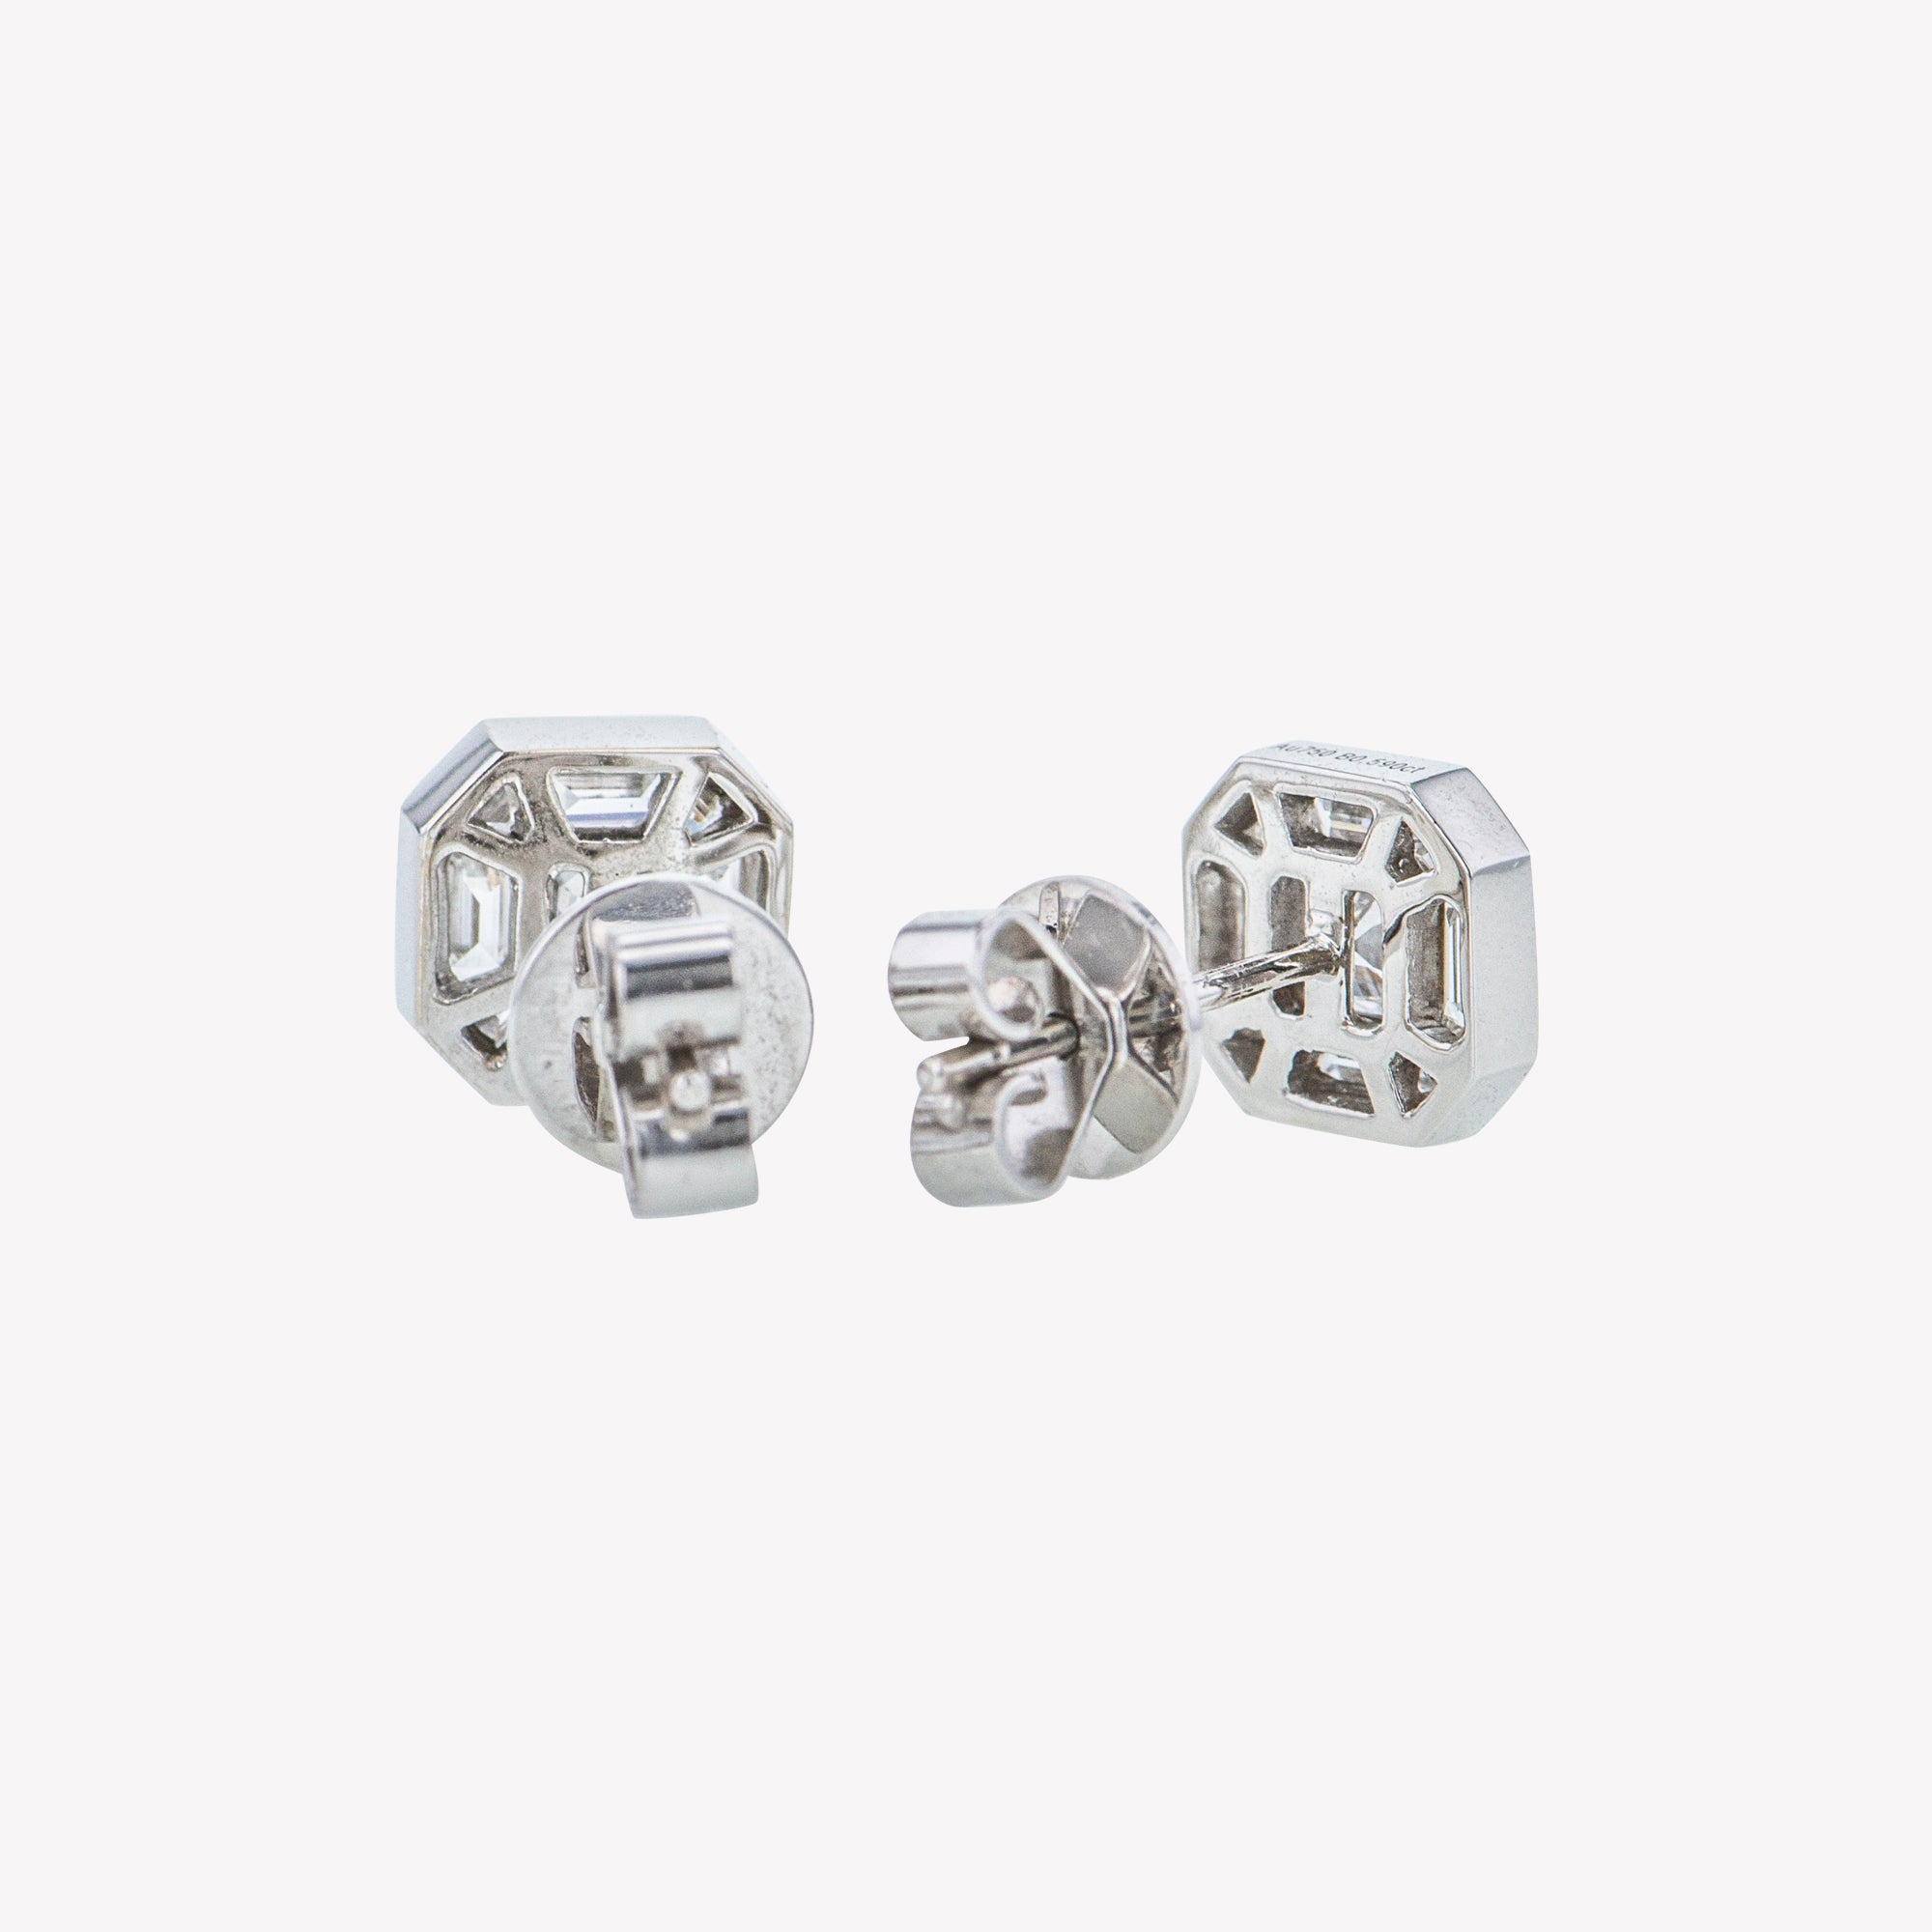 White Gold Asscher Studs with Spike Accessories